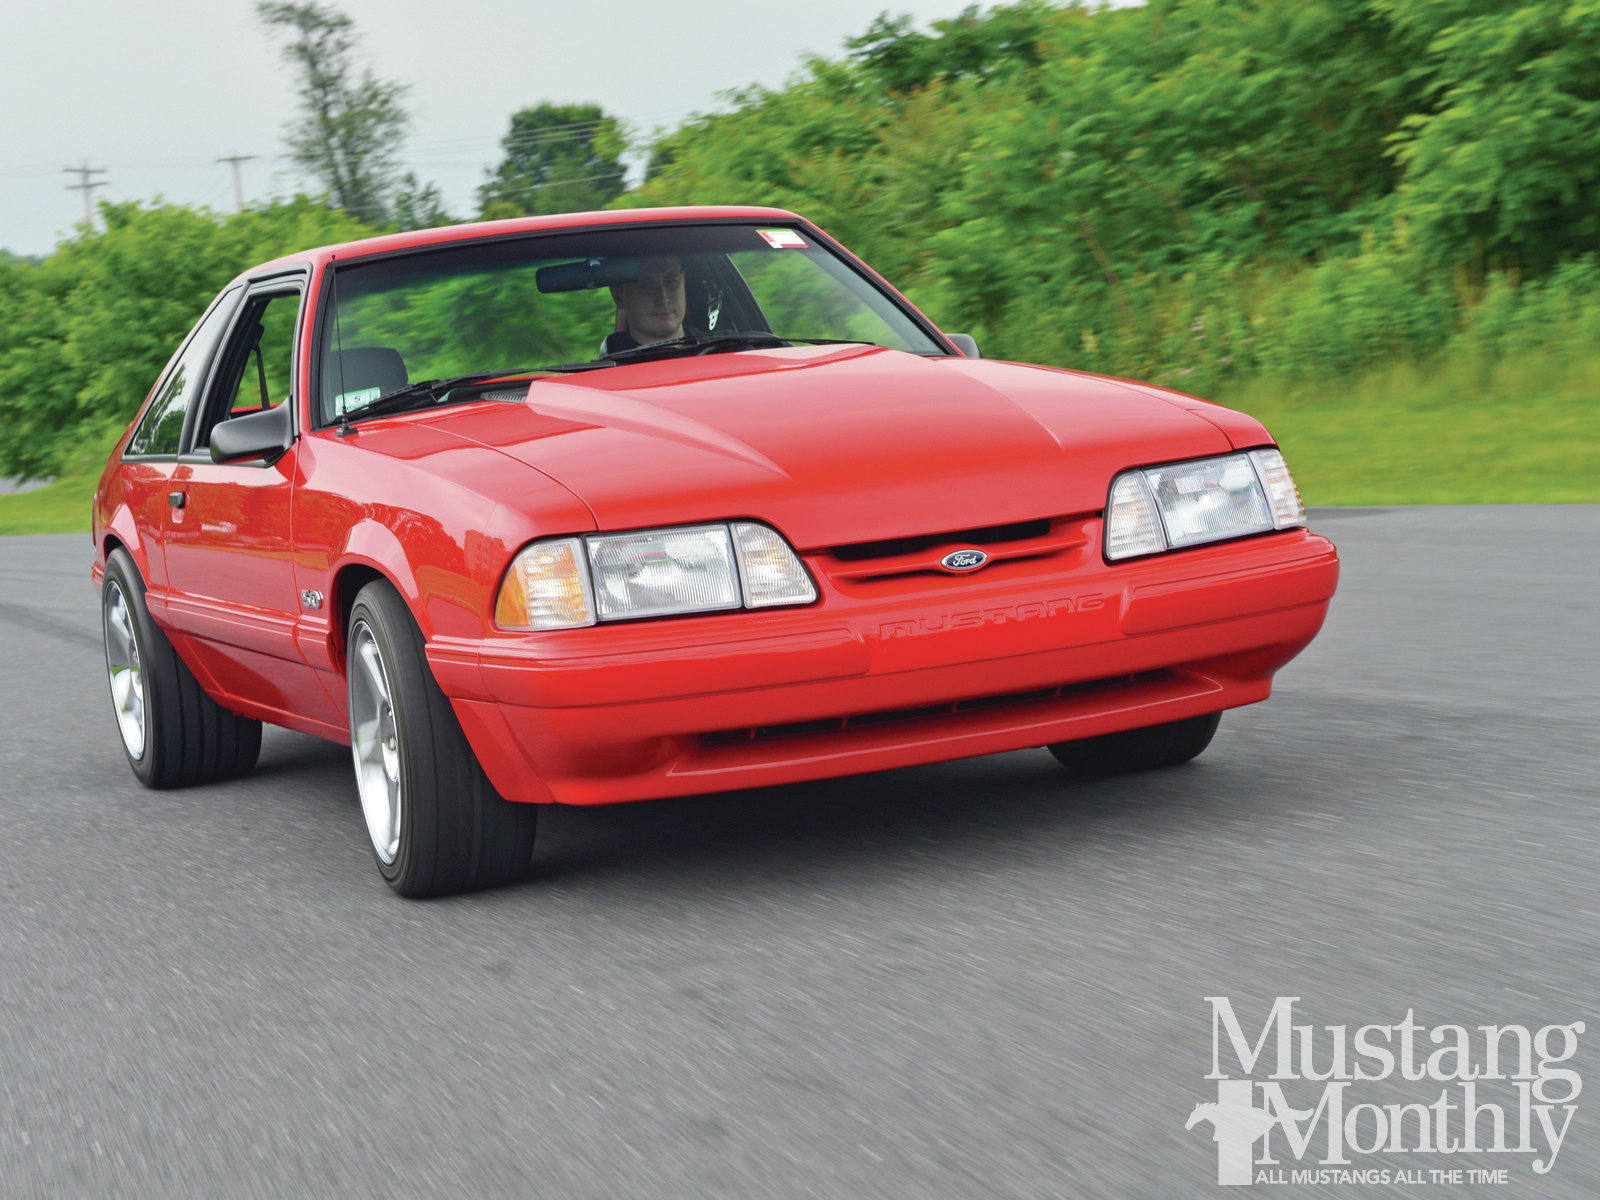 1990 Ford Mustang #10